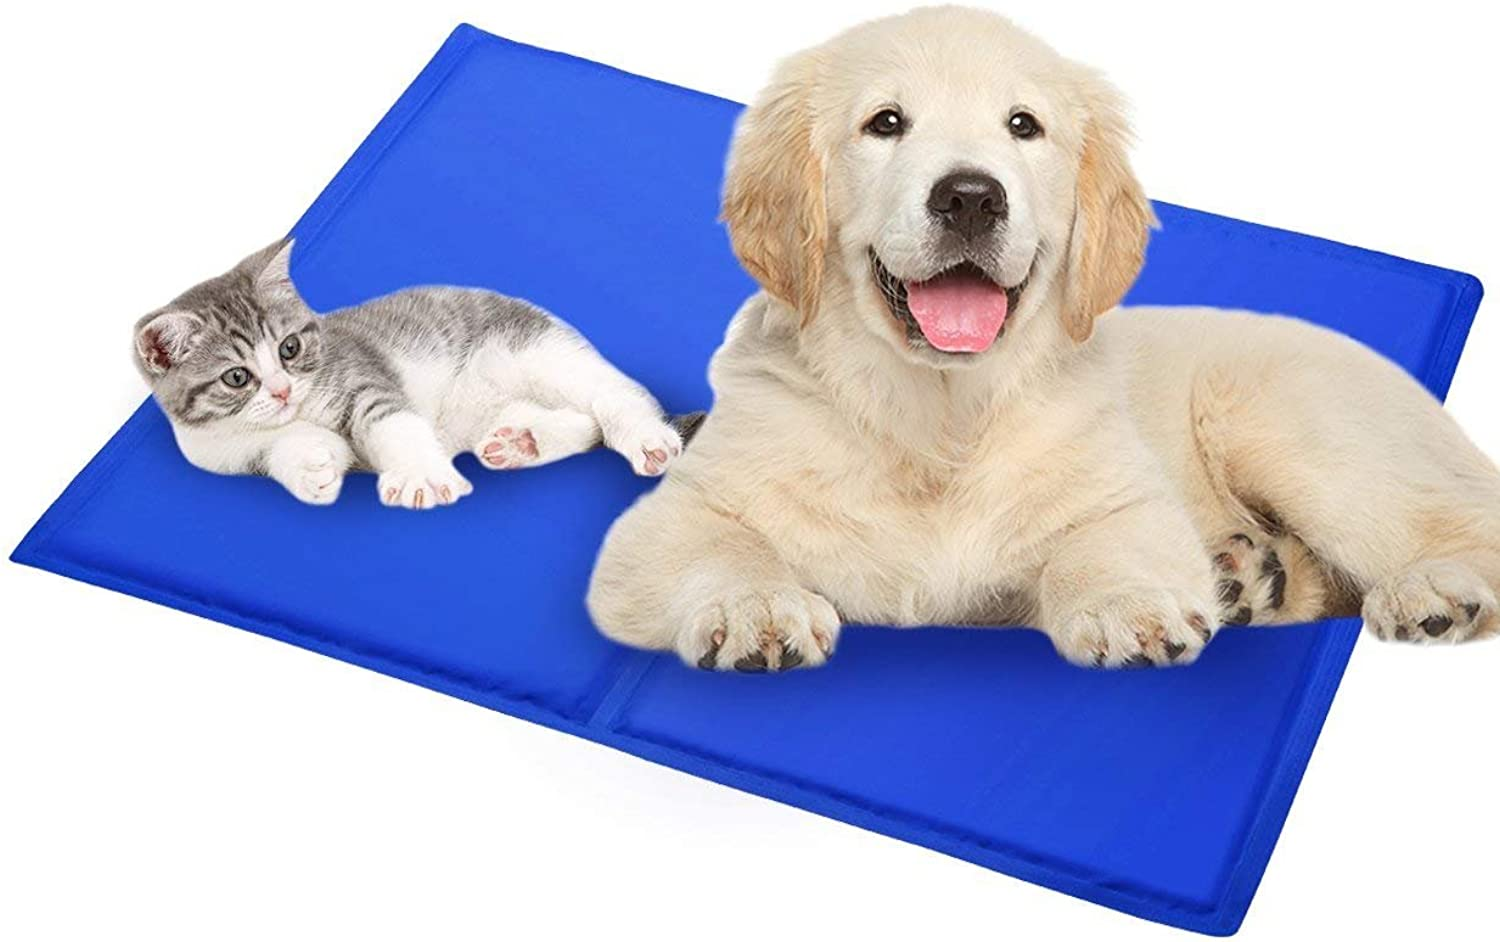 Dog Cooling Mat  Delaman Self Cooling Pet Gel Pad, Comfortable Cat Bed, Non Toxic, Breathable, Easy to Clean (Size   M)